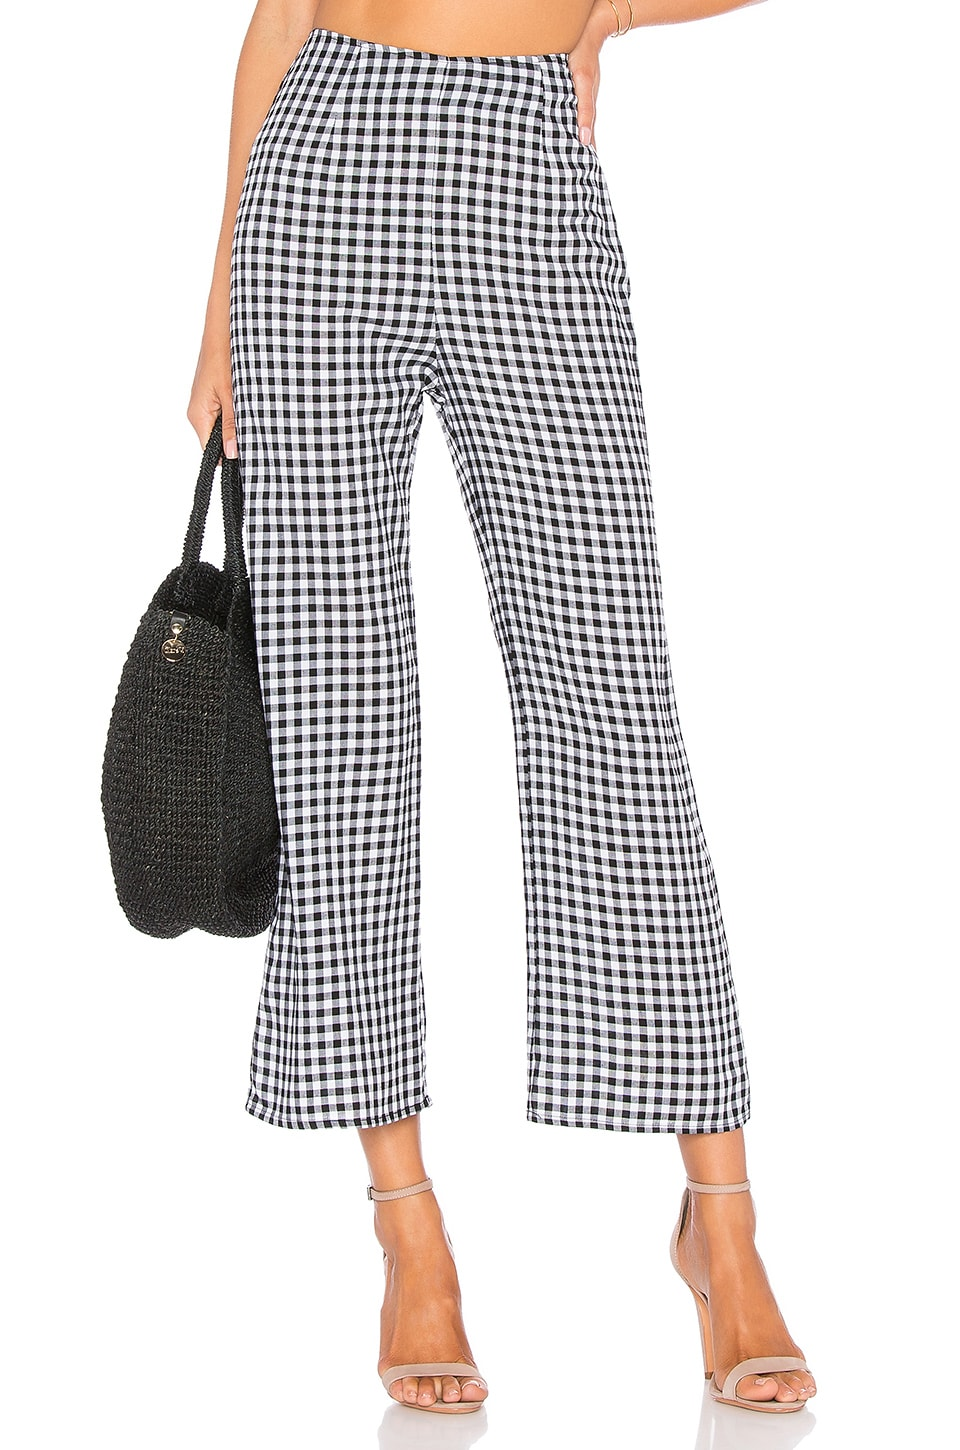 FLYNN SKYE Parker Pant in Check Me Out